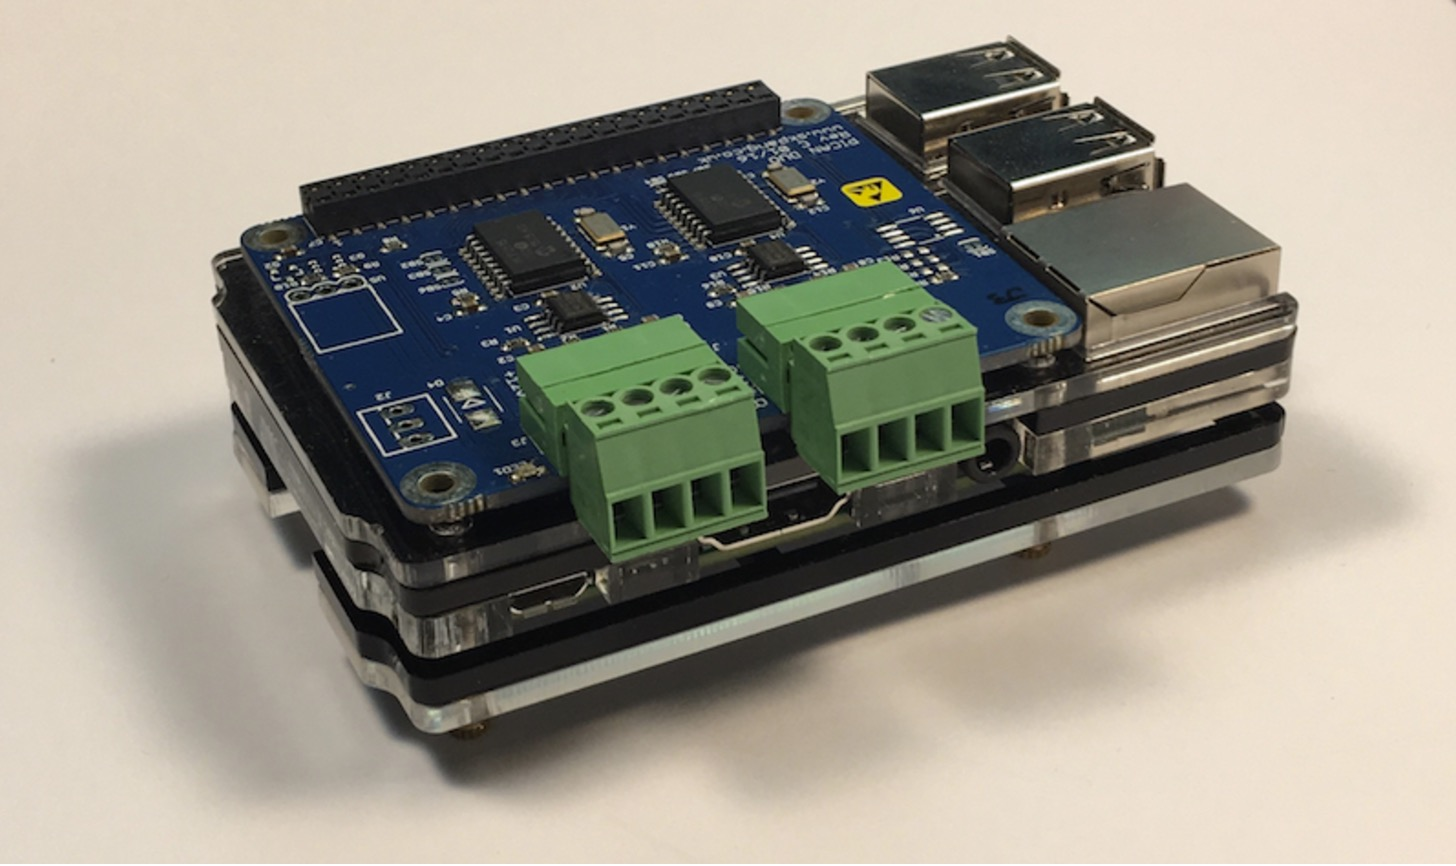 Raspberry Pi 3 System With Dual CAN Bus Interface